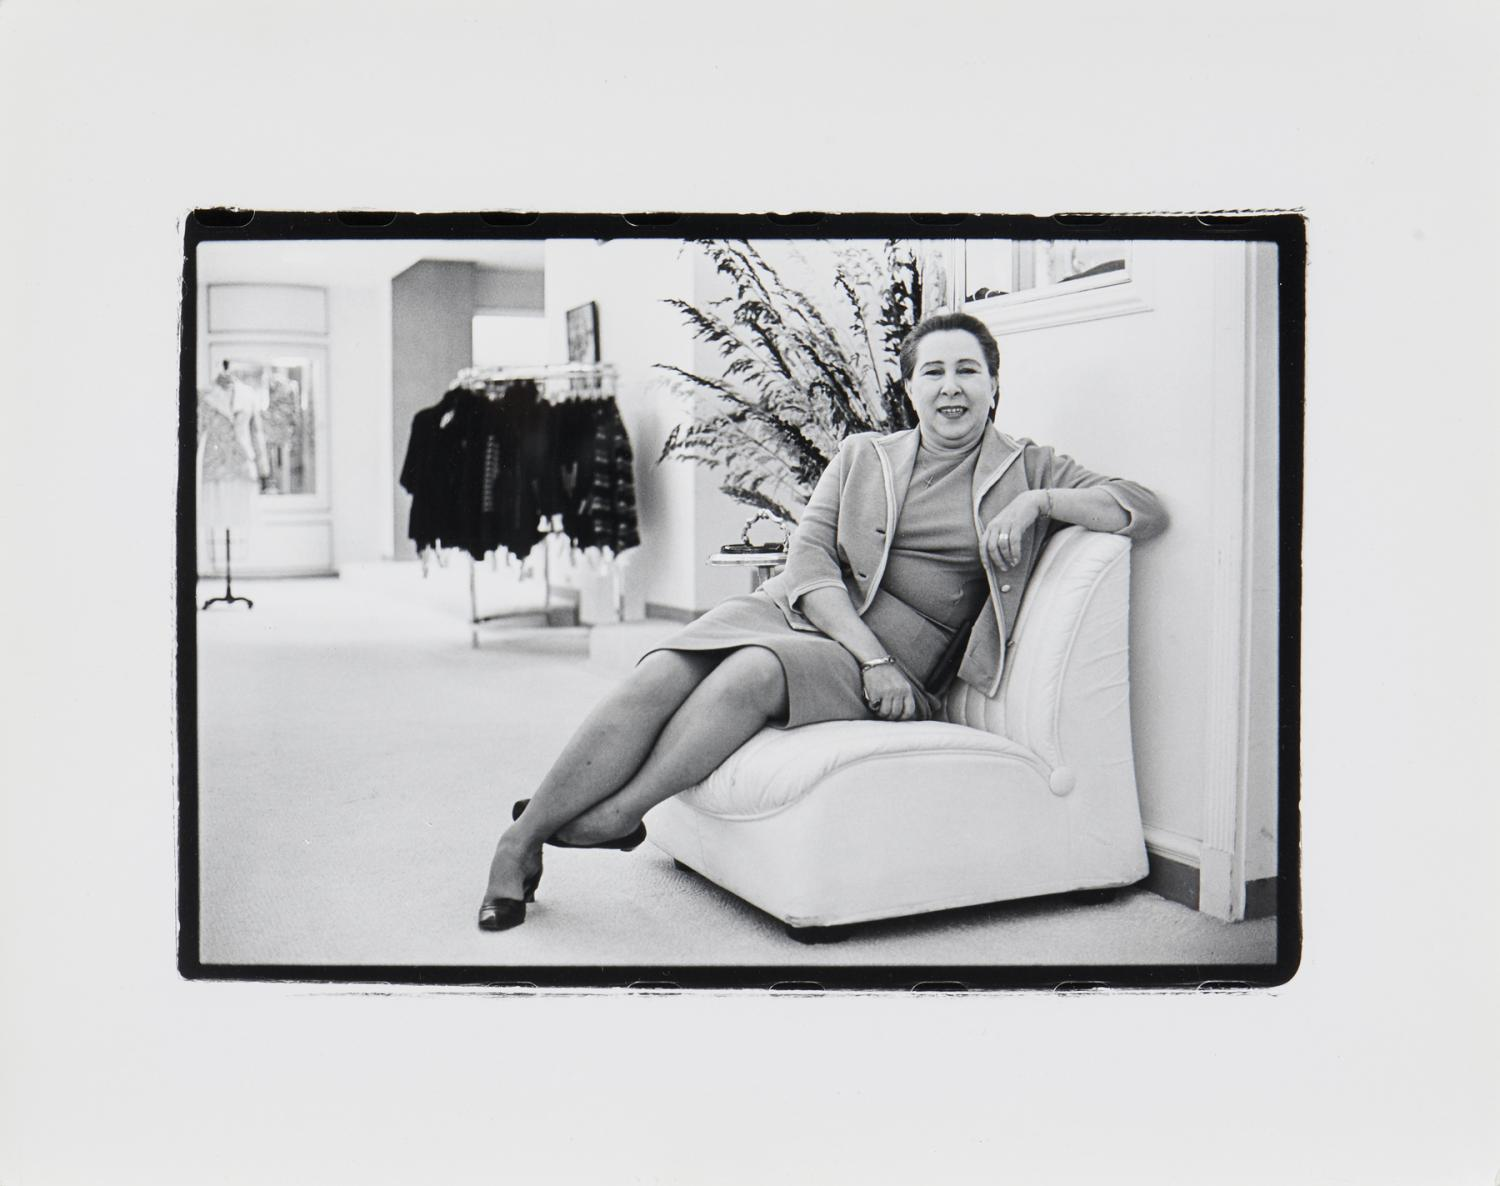 A black and white photograph of a middle aged, heavy-set saleswoman leaning against a divan, smiling. She is in a high end clothing store, spacious and neatly kept. There is a rack of clothing visible in room behind her.